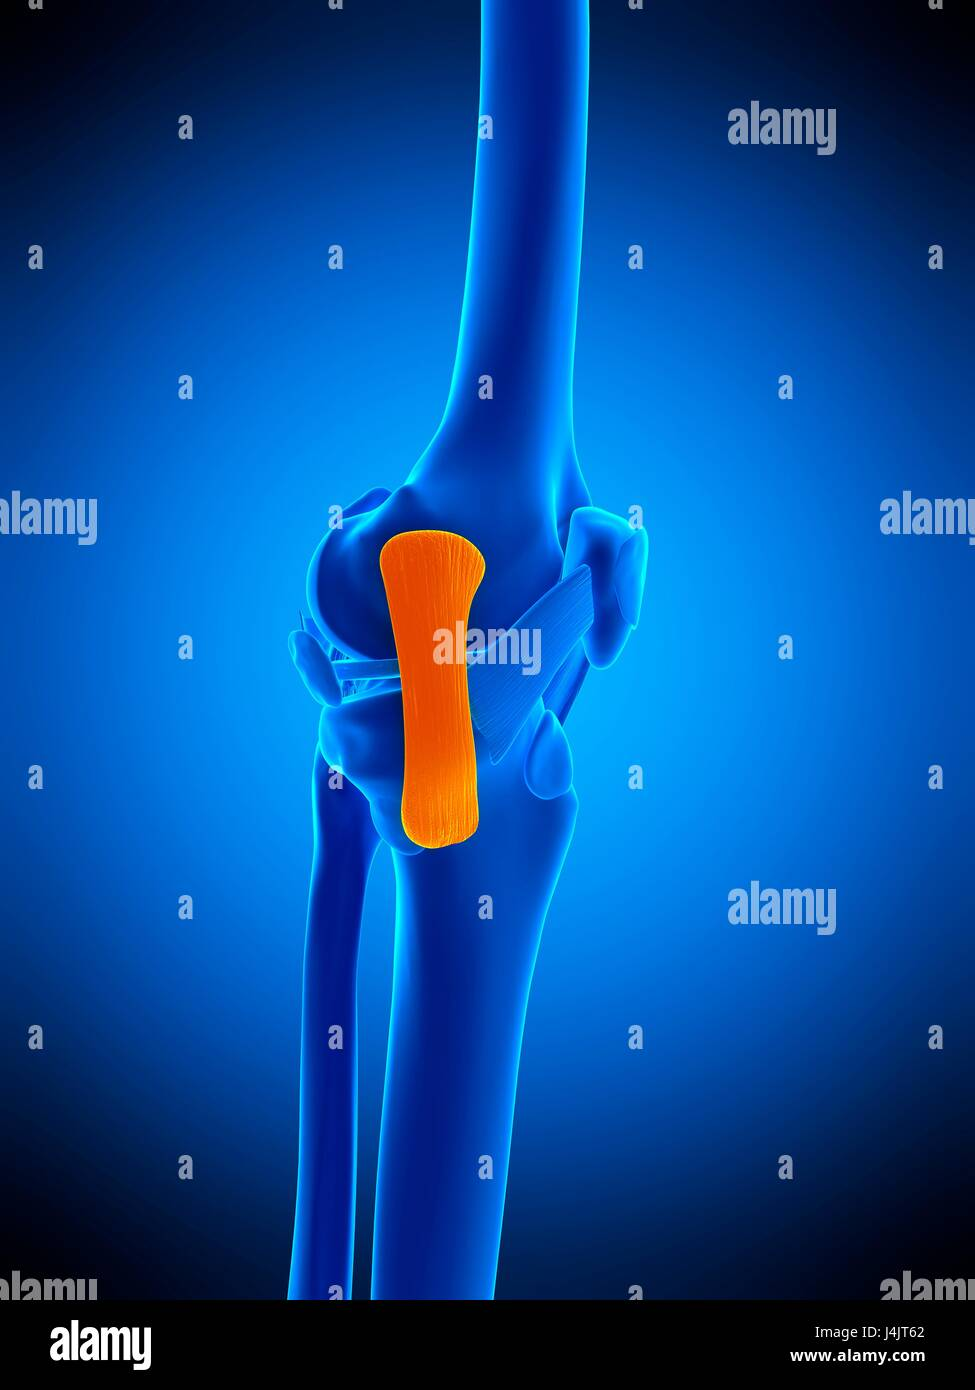 Collateral Ligament Stockfotos & Collateral Ligament Bilder - Alamy